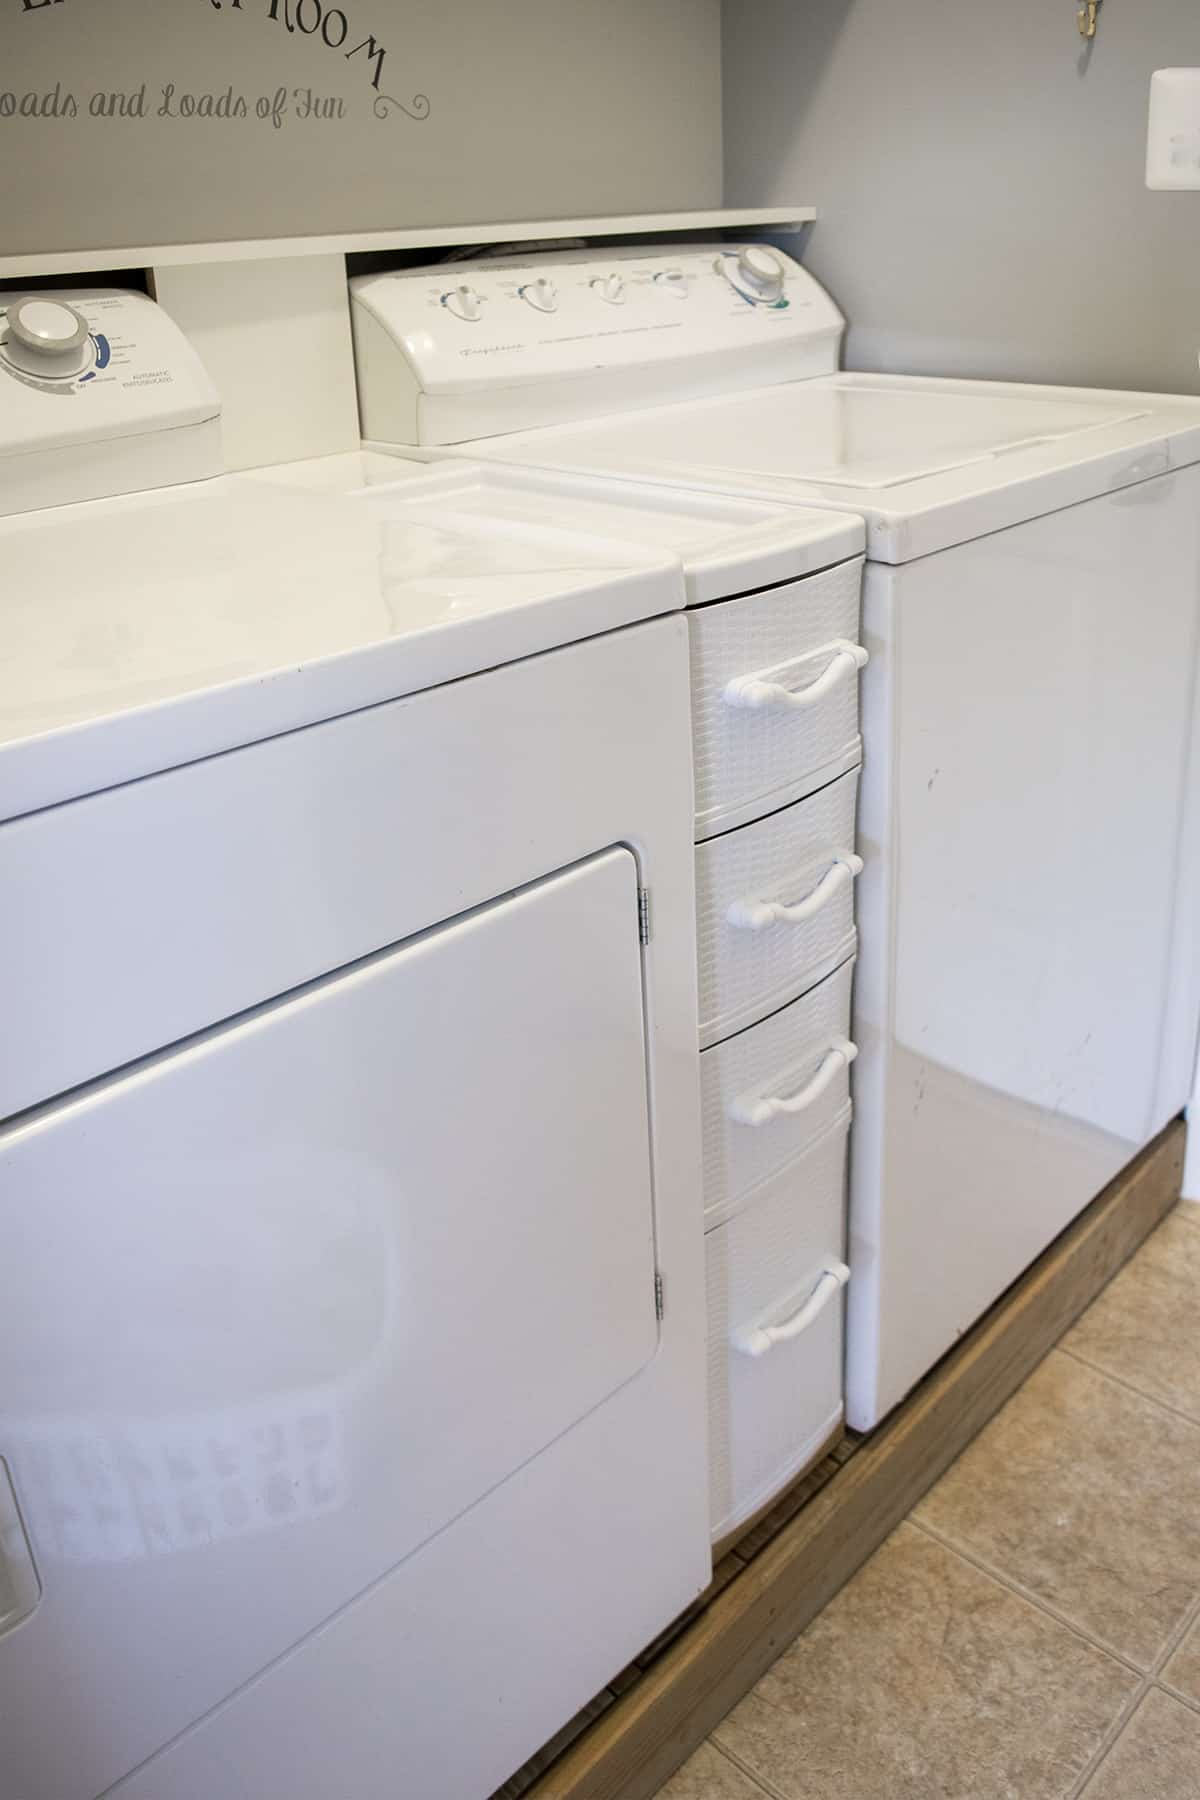 Washer and Dryer on a Platform for easier reach with storage console between them. How to easily organize laundry supplies and rags.